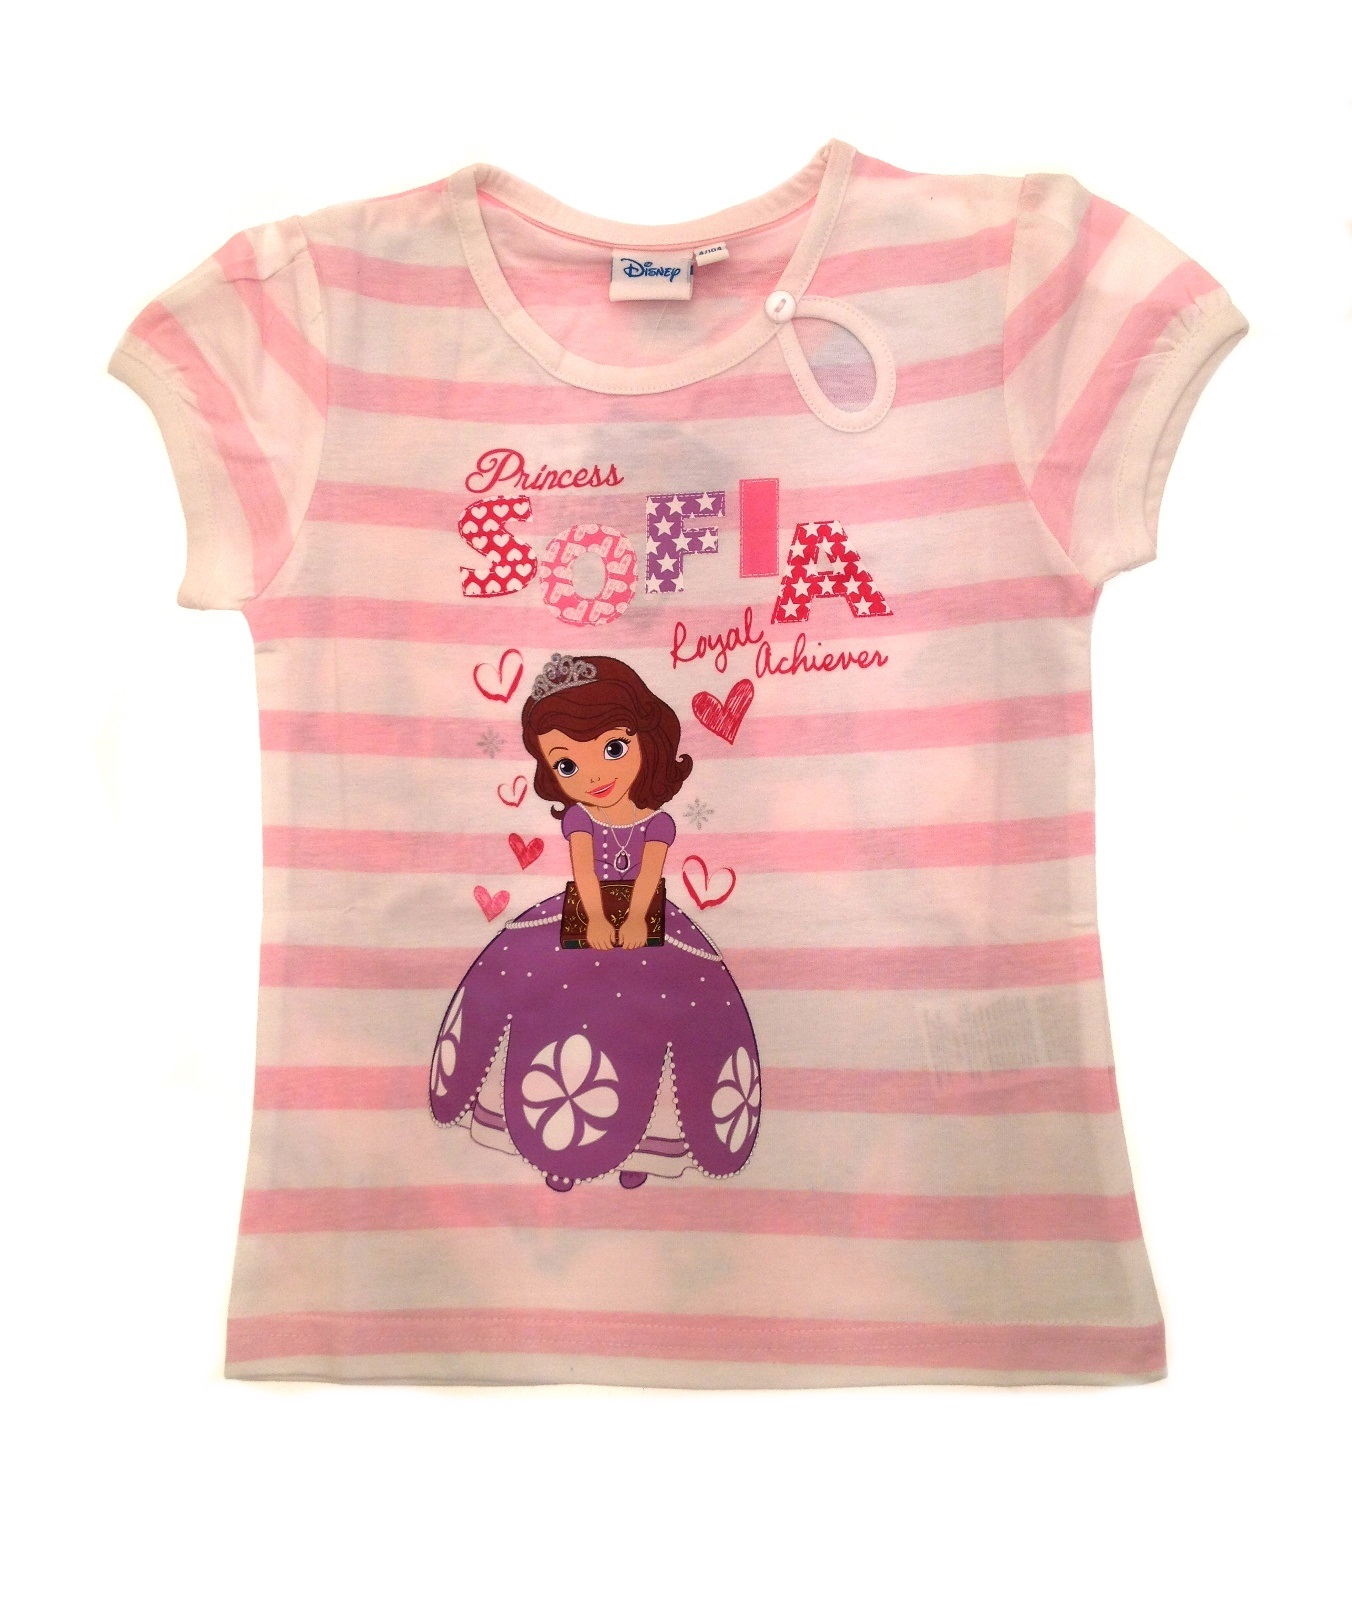 Find great deals on eBay for Disney T Shirts in Women's T-Shirts, Shoes and Accessories. Shop with confidence.